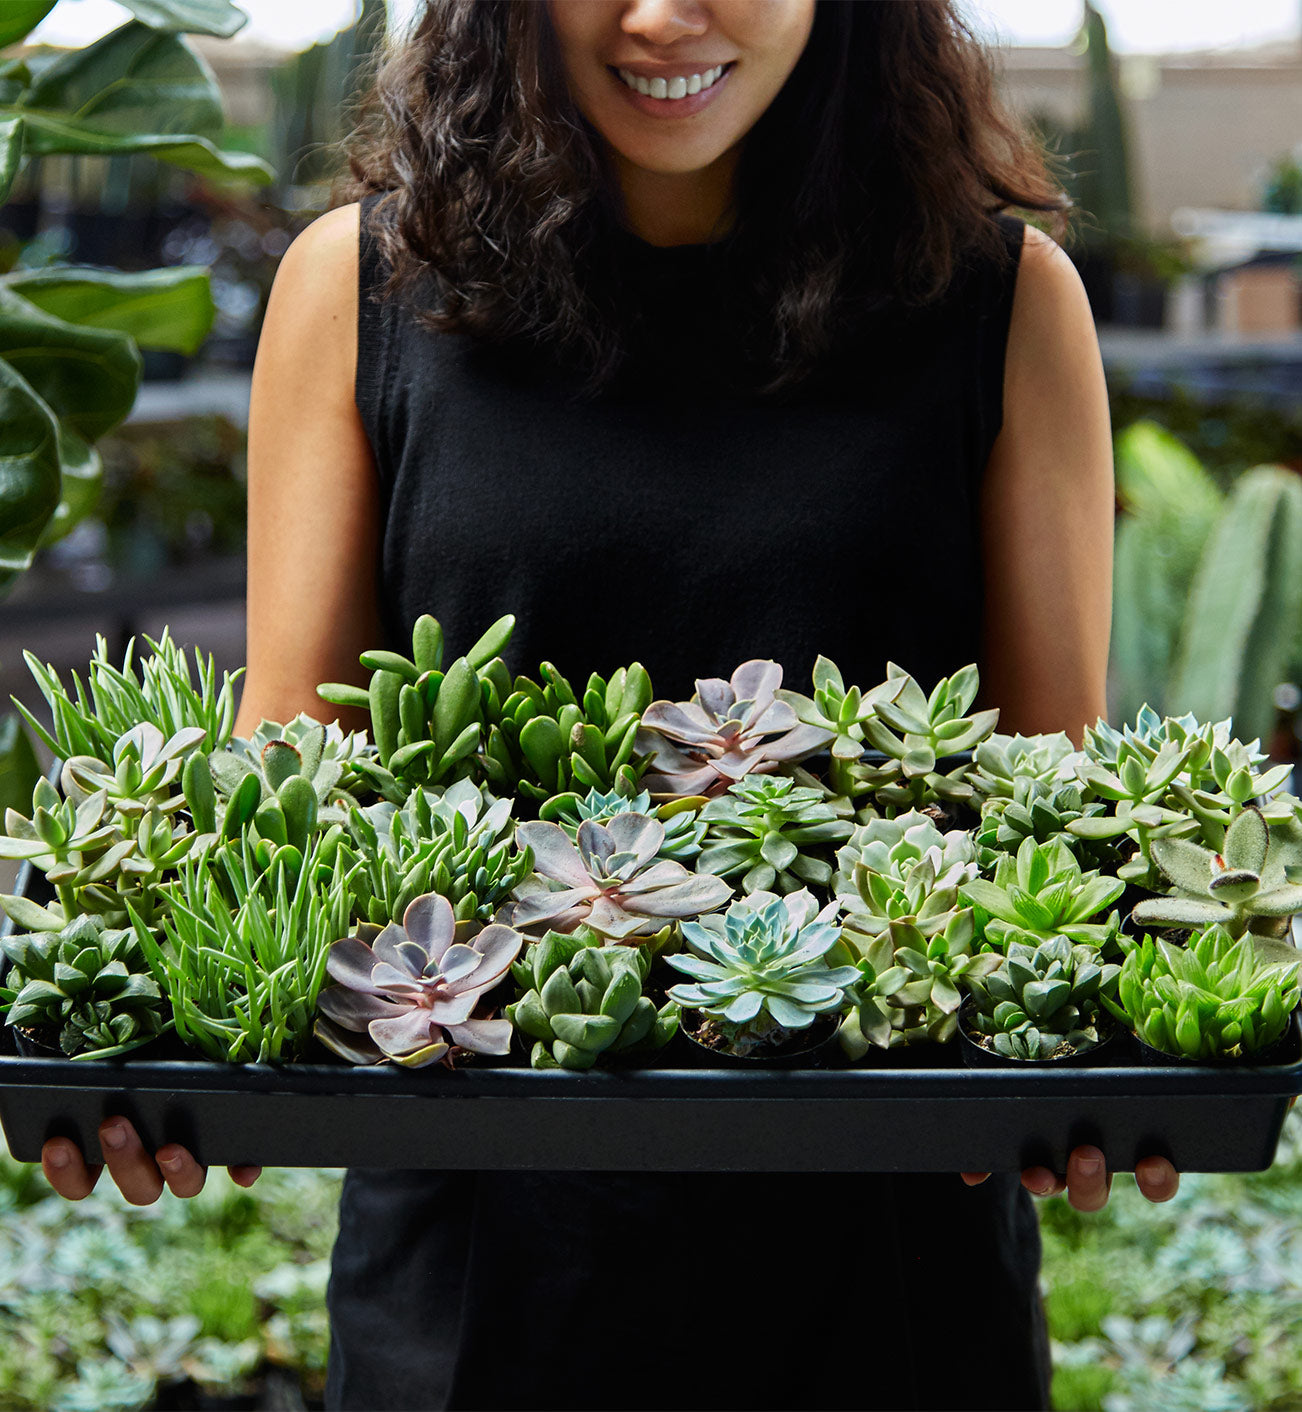 Person Holding Tray of Succulents